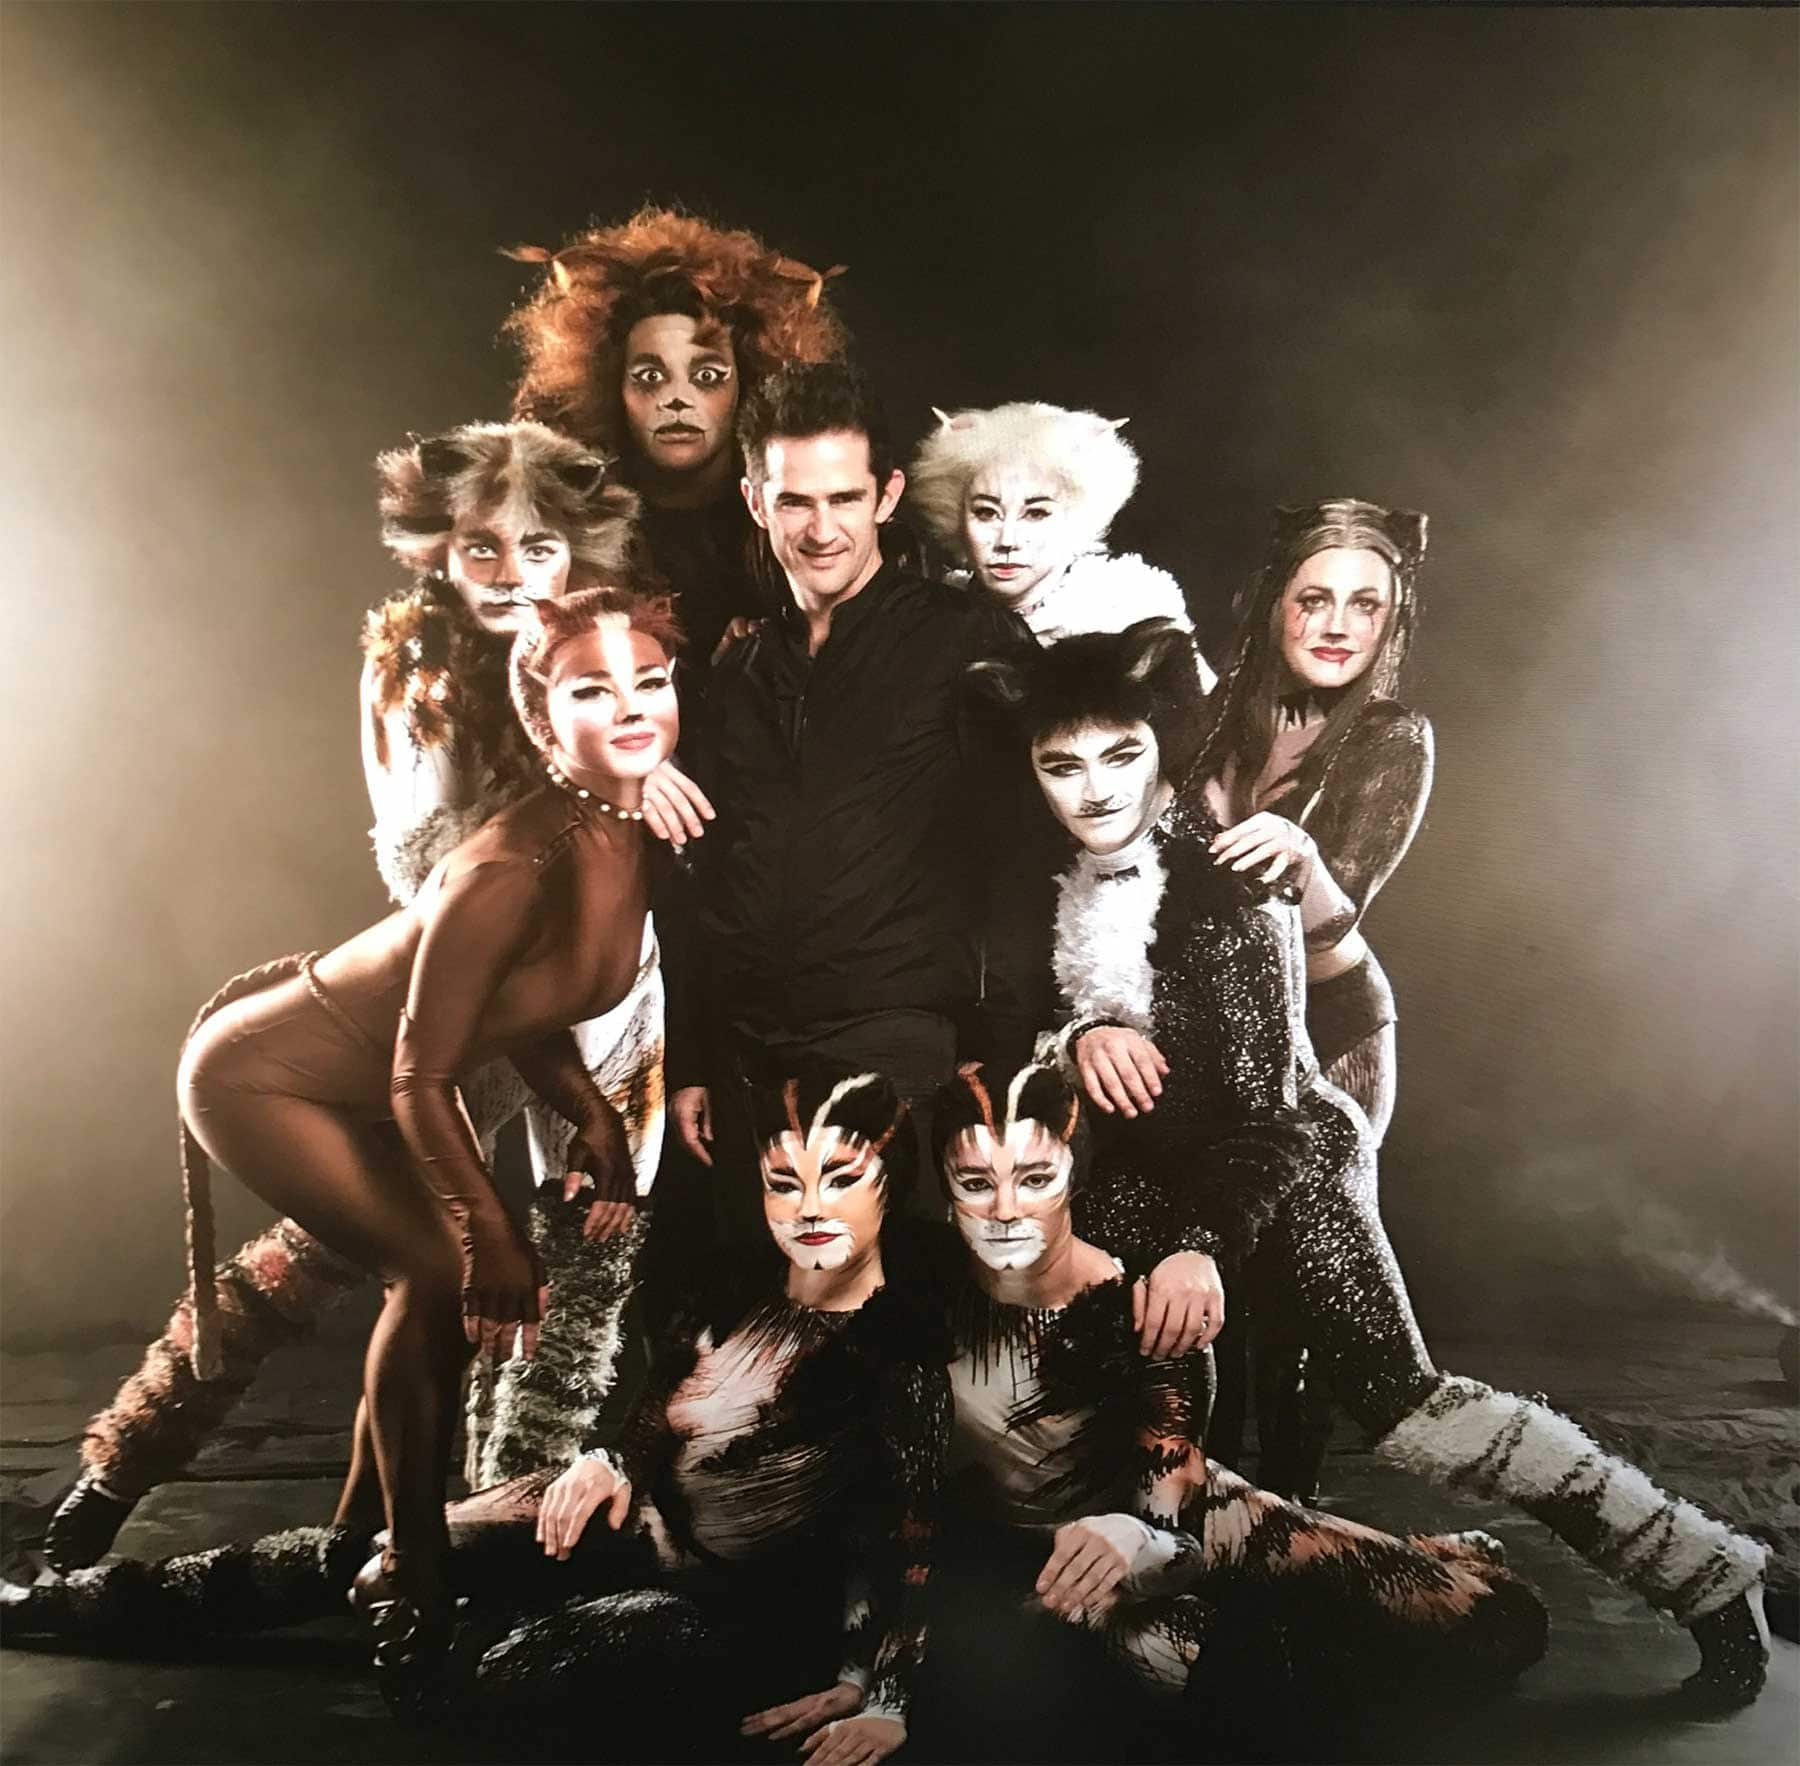 cast photo: Cats (2016)